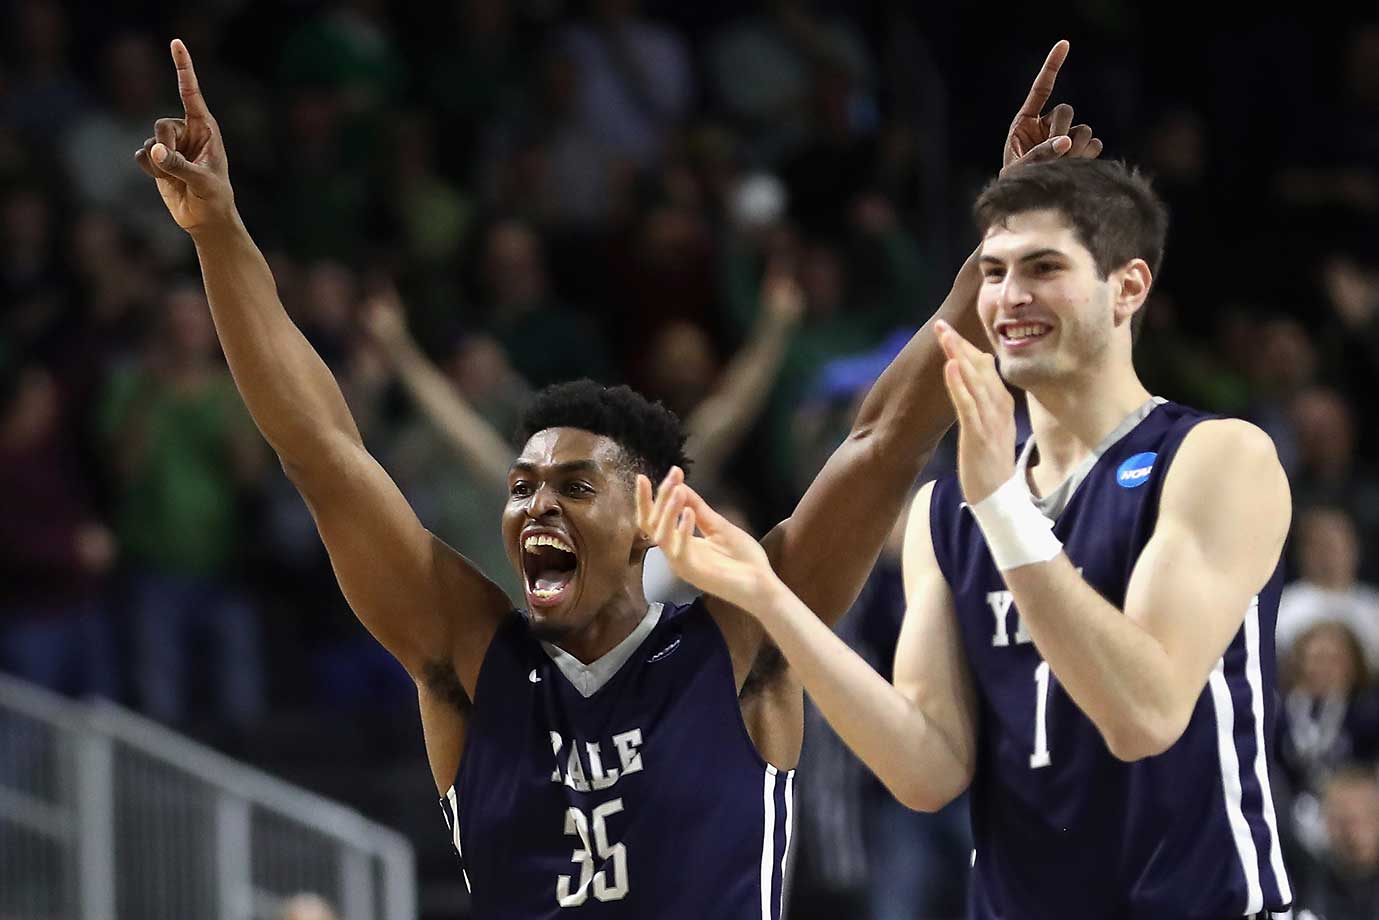 Here are some of the images that caught our eye on St. Patrick's Day, the first full day of the NCAA College Basketball Tournament, starting with Yale's upset of Baylor. Here, Brandon Sherrod, left, and Anthony Dallier celebrate the 79-75 victory.